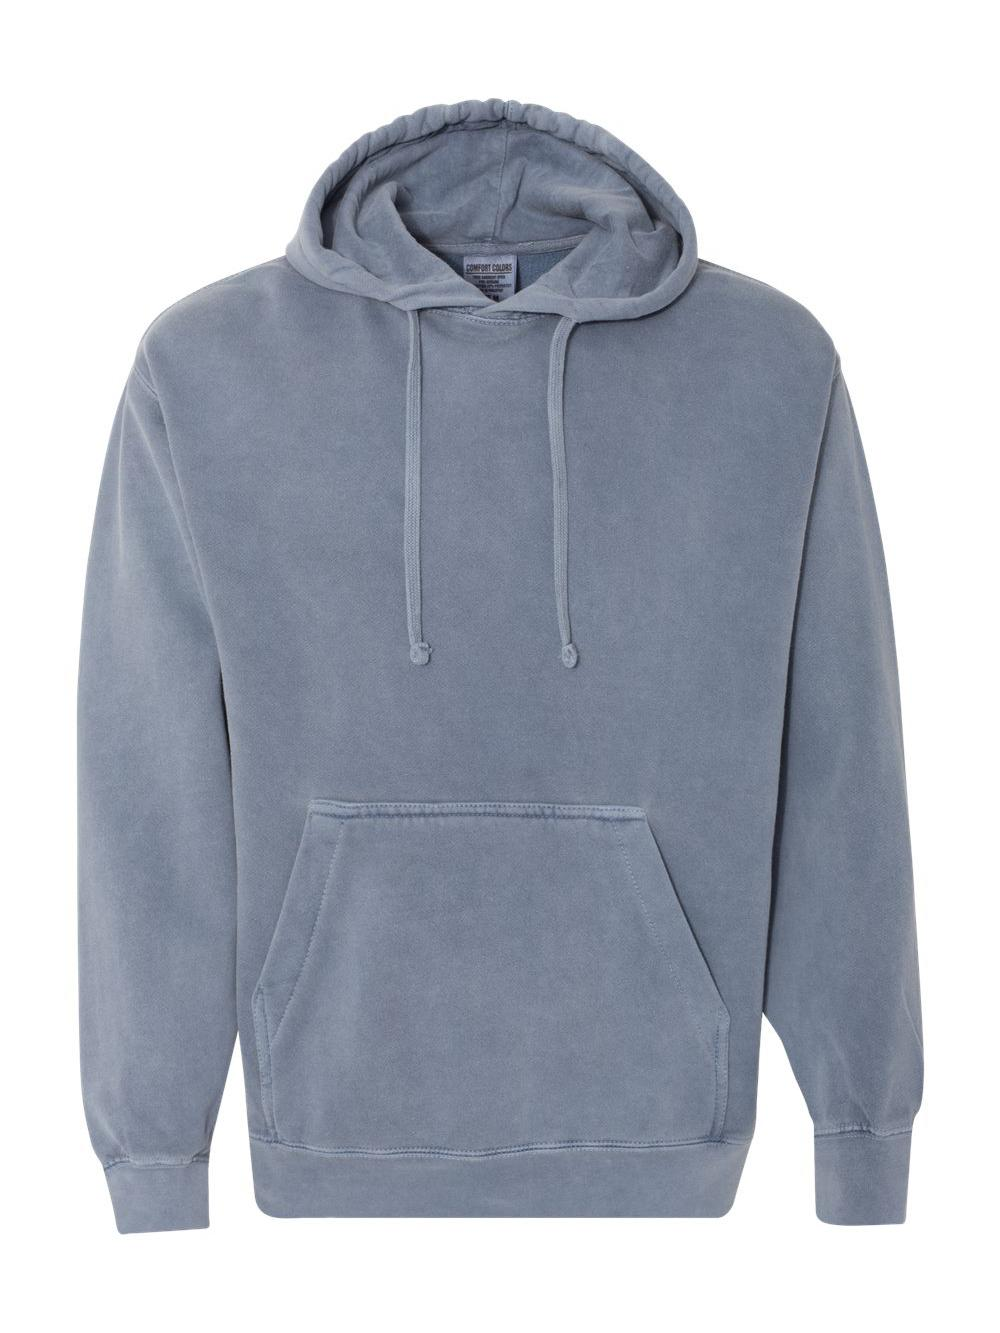 Comfort-Colors-Garment-Dyed-Hooded-Pullover-Sweatshirt-1567 thumbnail 3